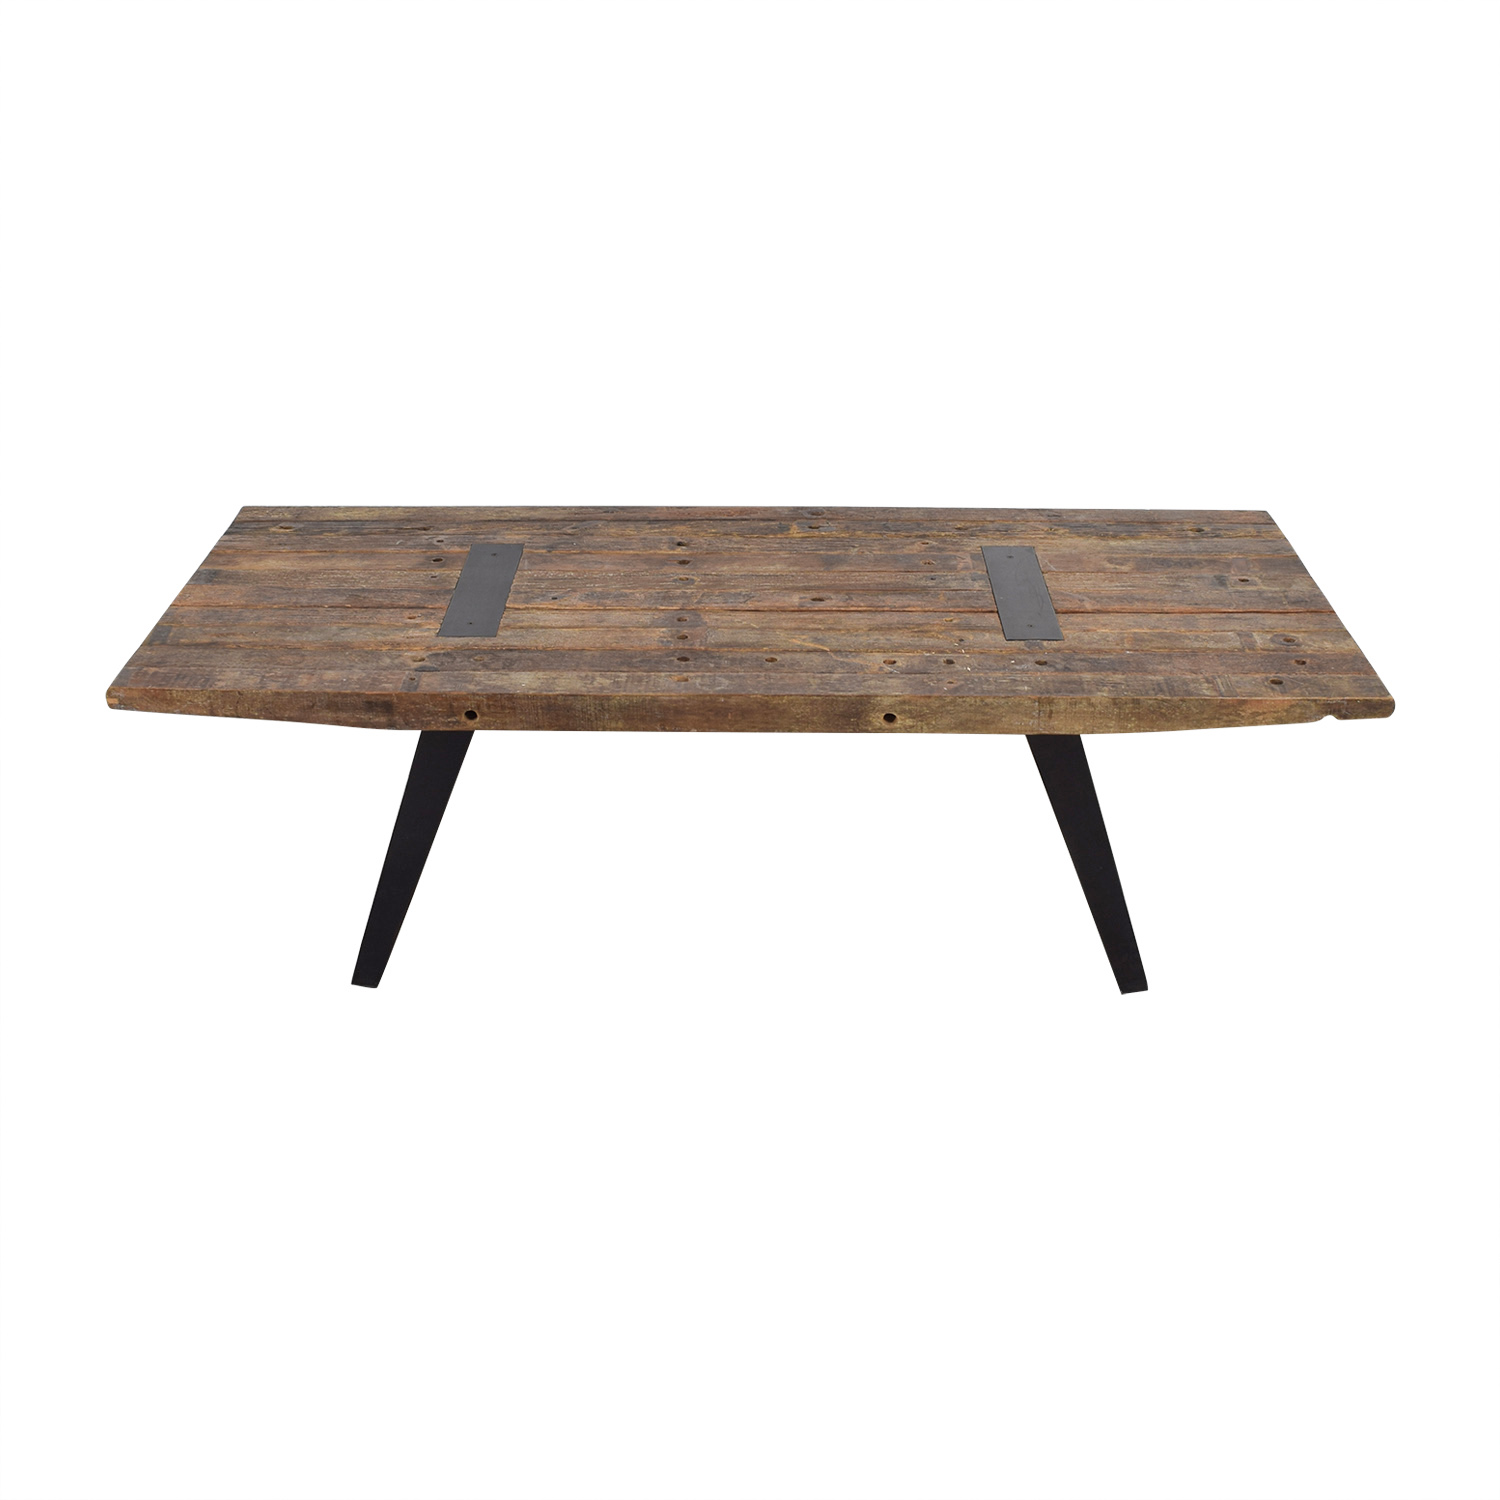 Rustic Wood Simon Dining Table sale